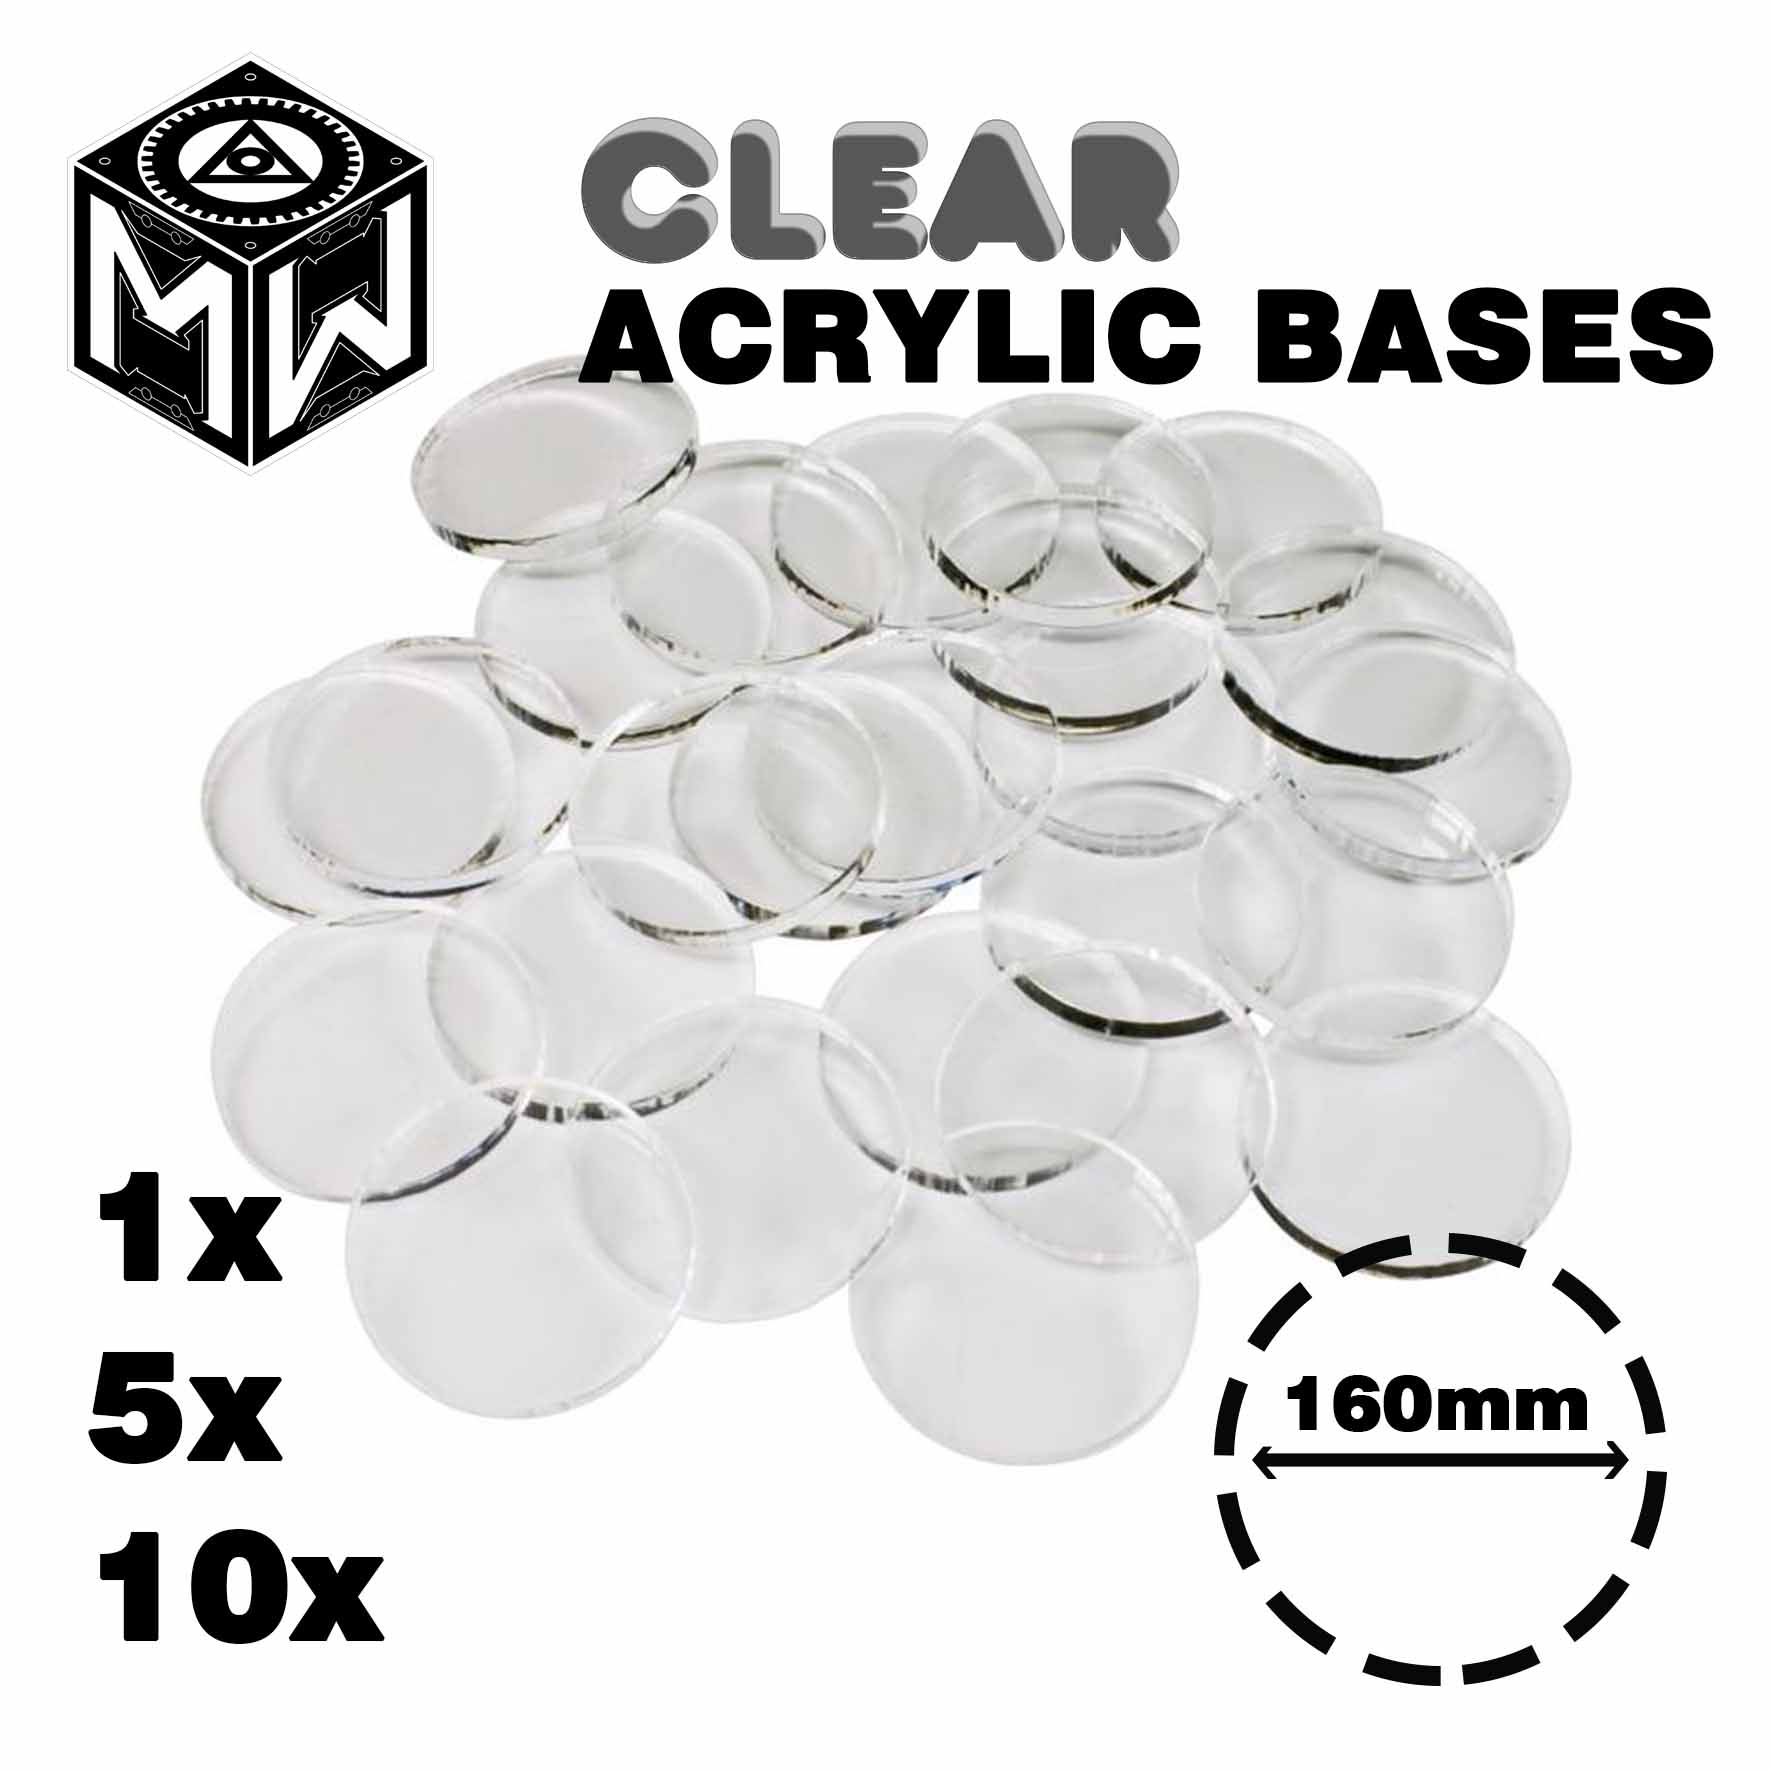 3mm Acrylic Clear Bases, Round 160mm